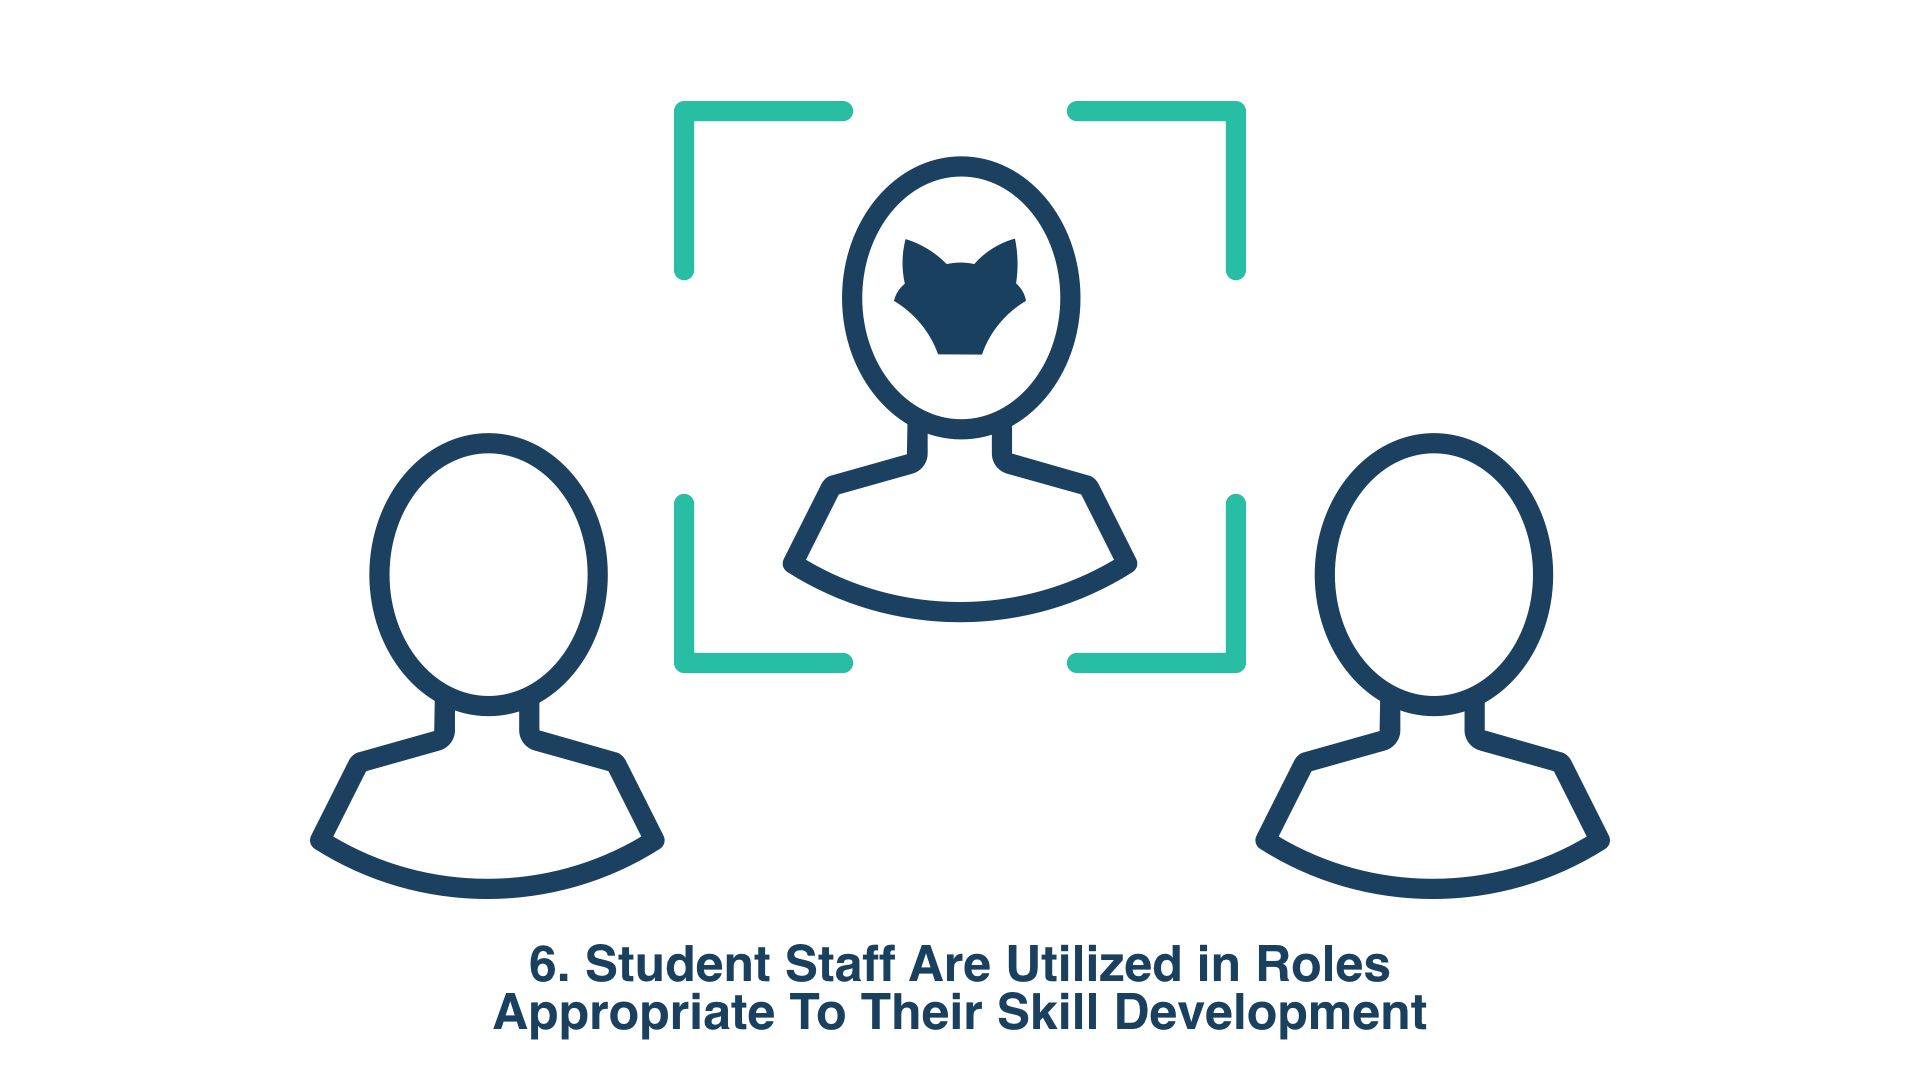 6. Student Staff Are Utilized in Roles Appropriate To Their Skill Development